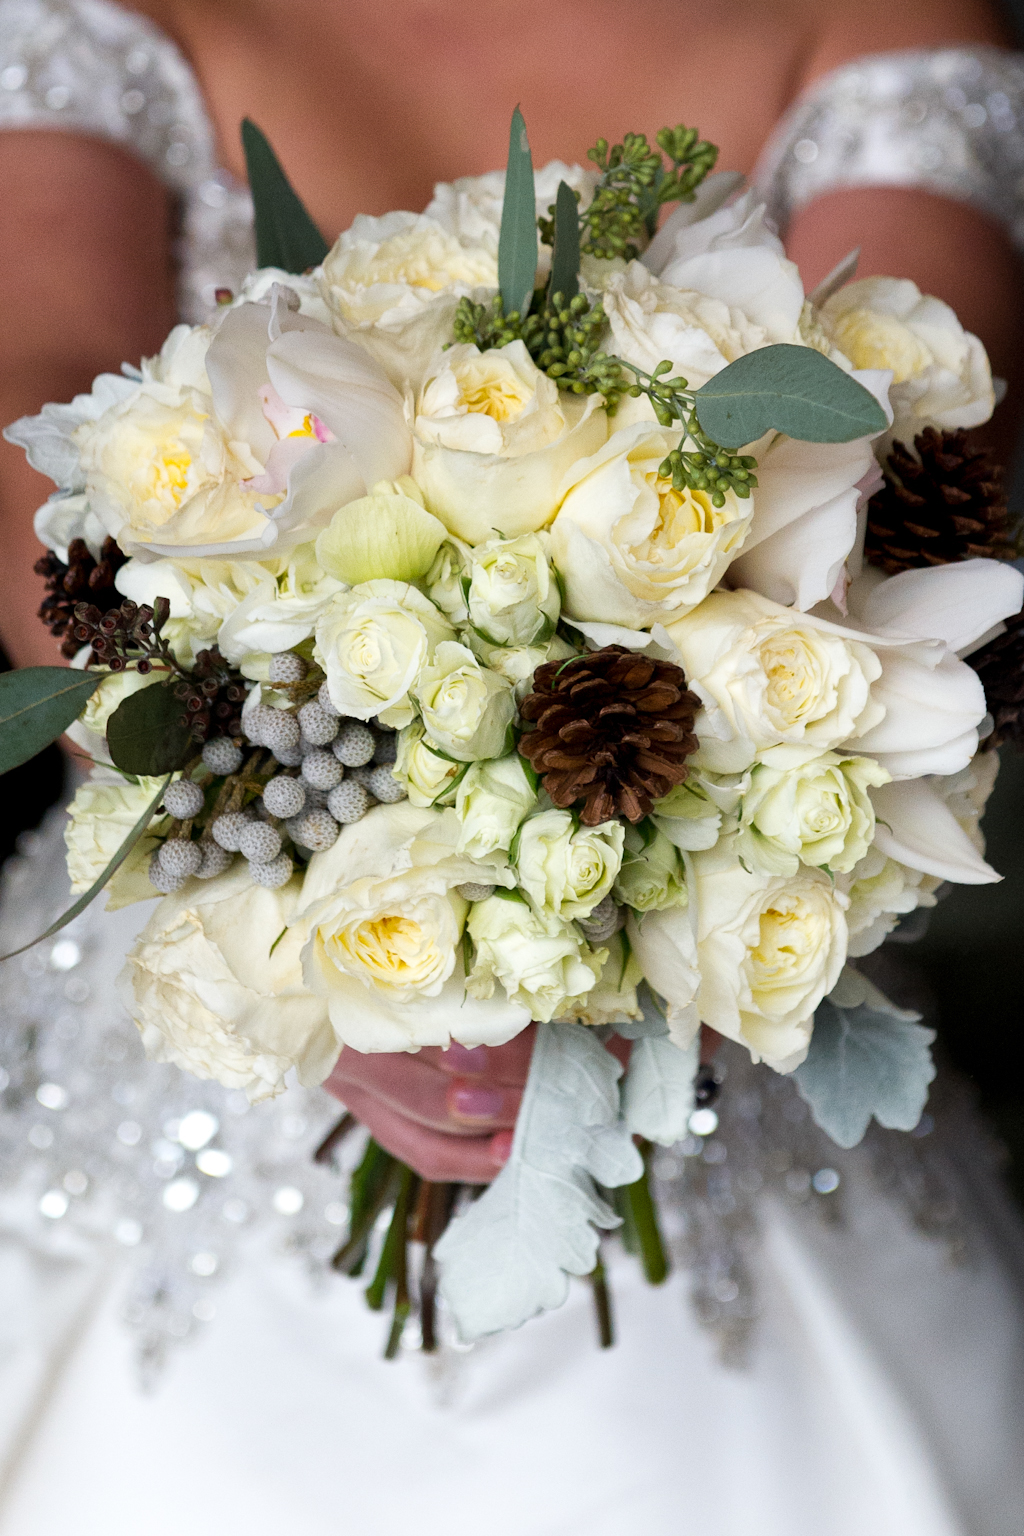 wedding ideas 15 bouquet ideas for a winter ceremony inside